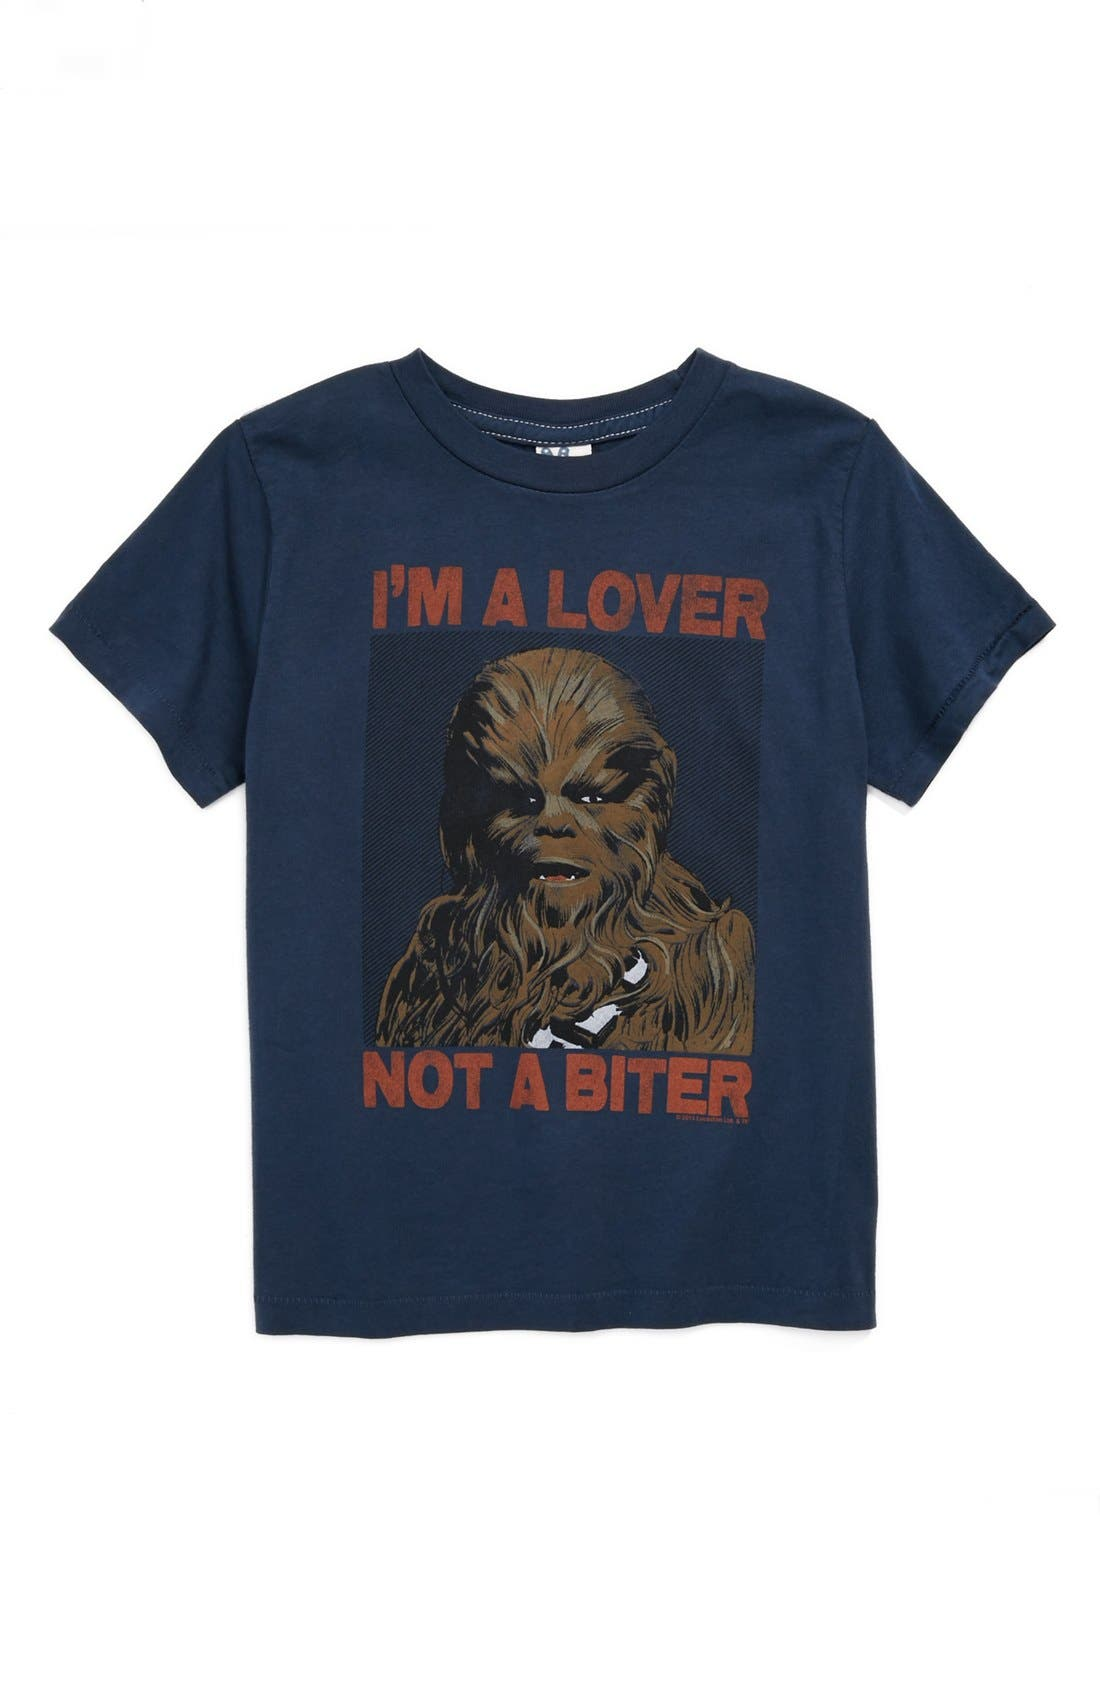 Alternate Image 1 Selected - Junk Food 'Lover Not a Biter' T-Shirt (Toddler Boys)